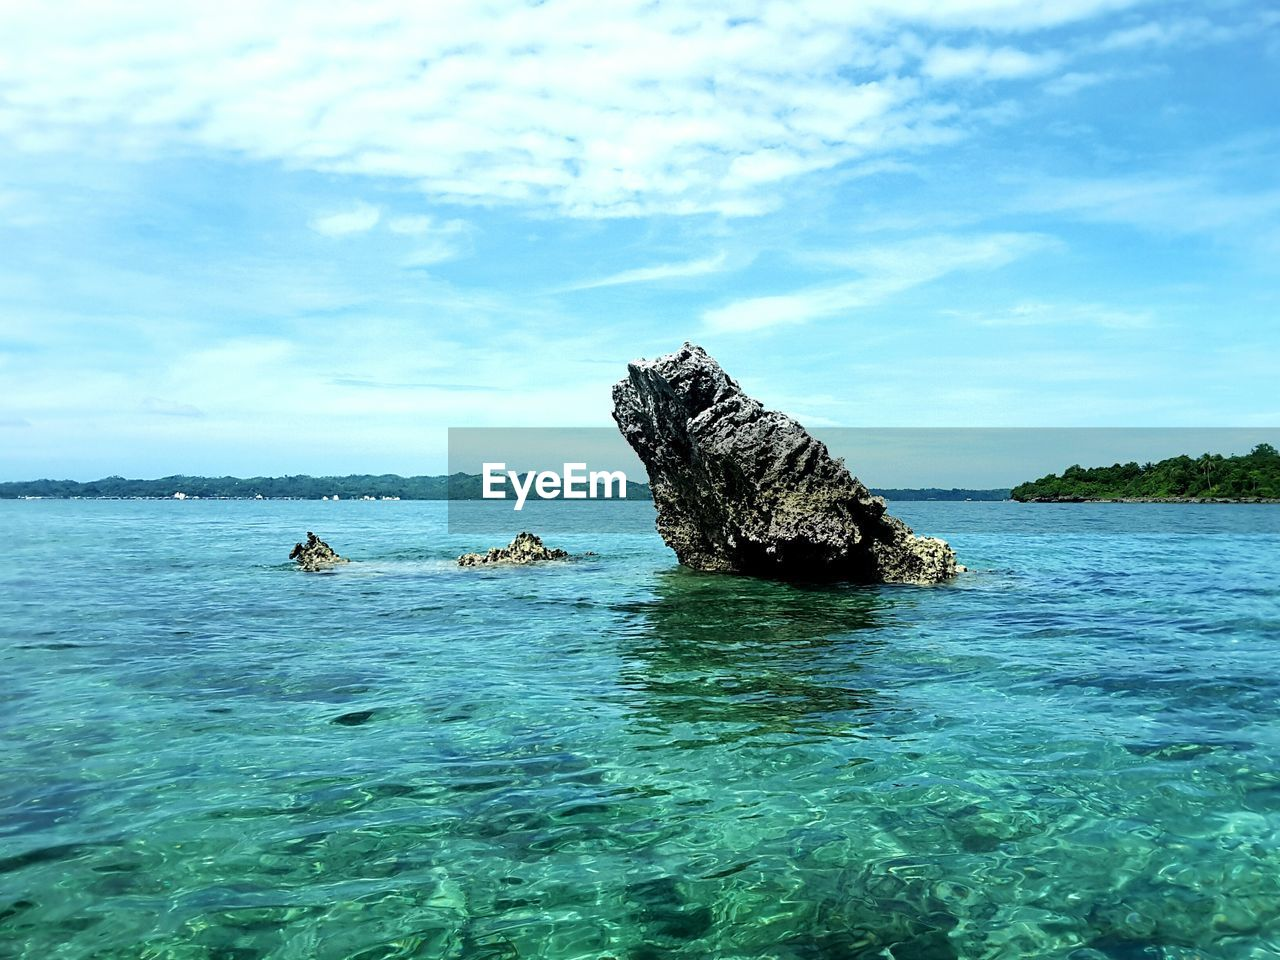 sea, rock - object, nature, water, beauty in nature, rock formation, tranquility, sky, scenics, day, tranquil scene, cloud - sky, waterfront, outdoors, no people, horizon over water